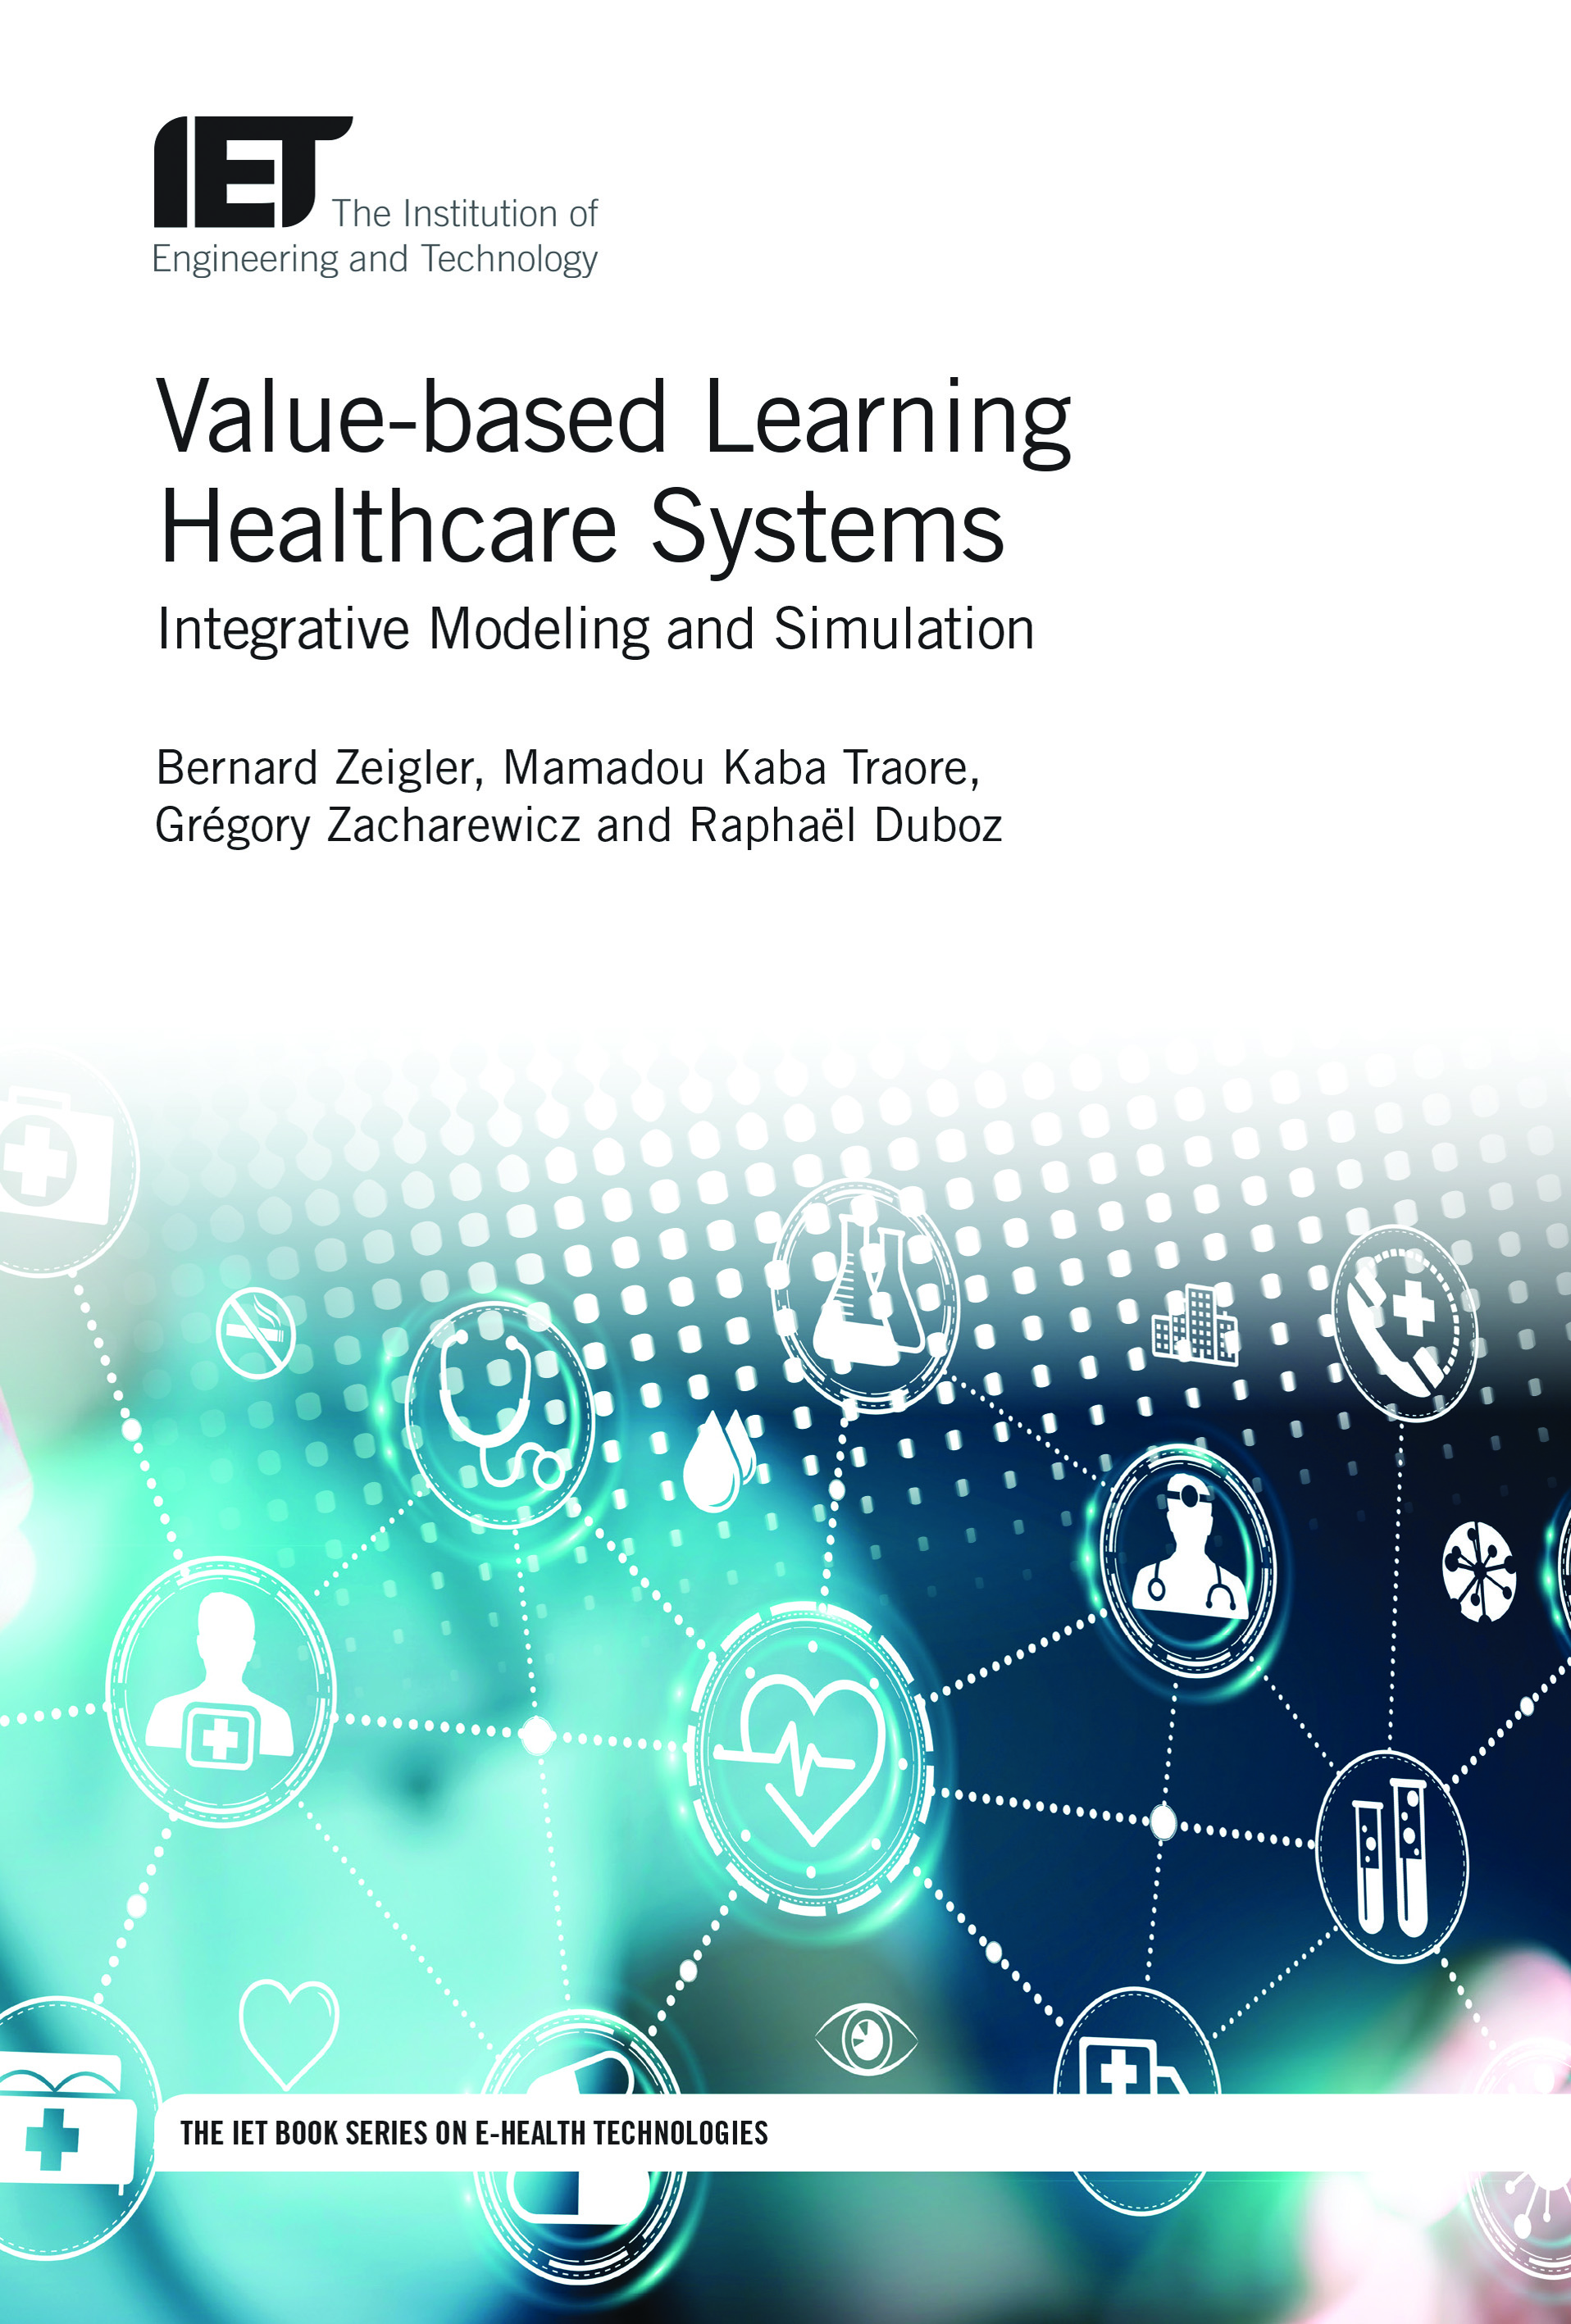 Value-based Learning Healthcare Systems, Integrative modeling and simulation